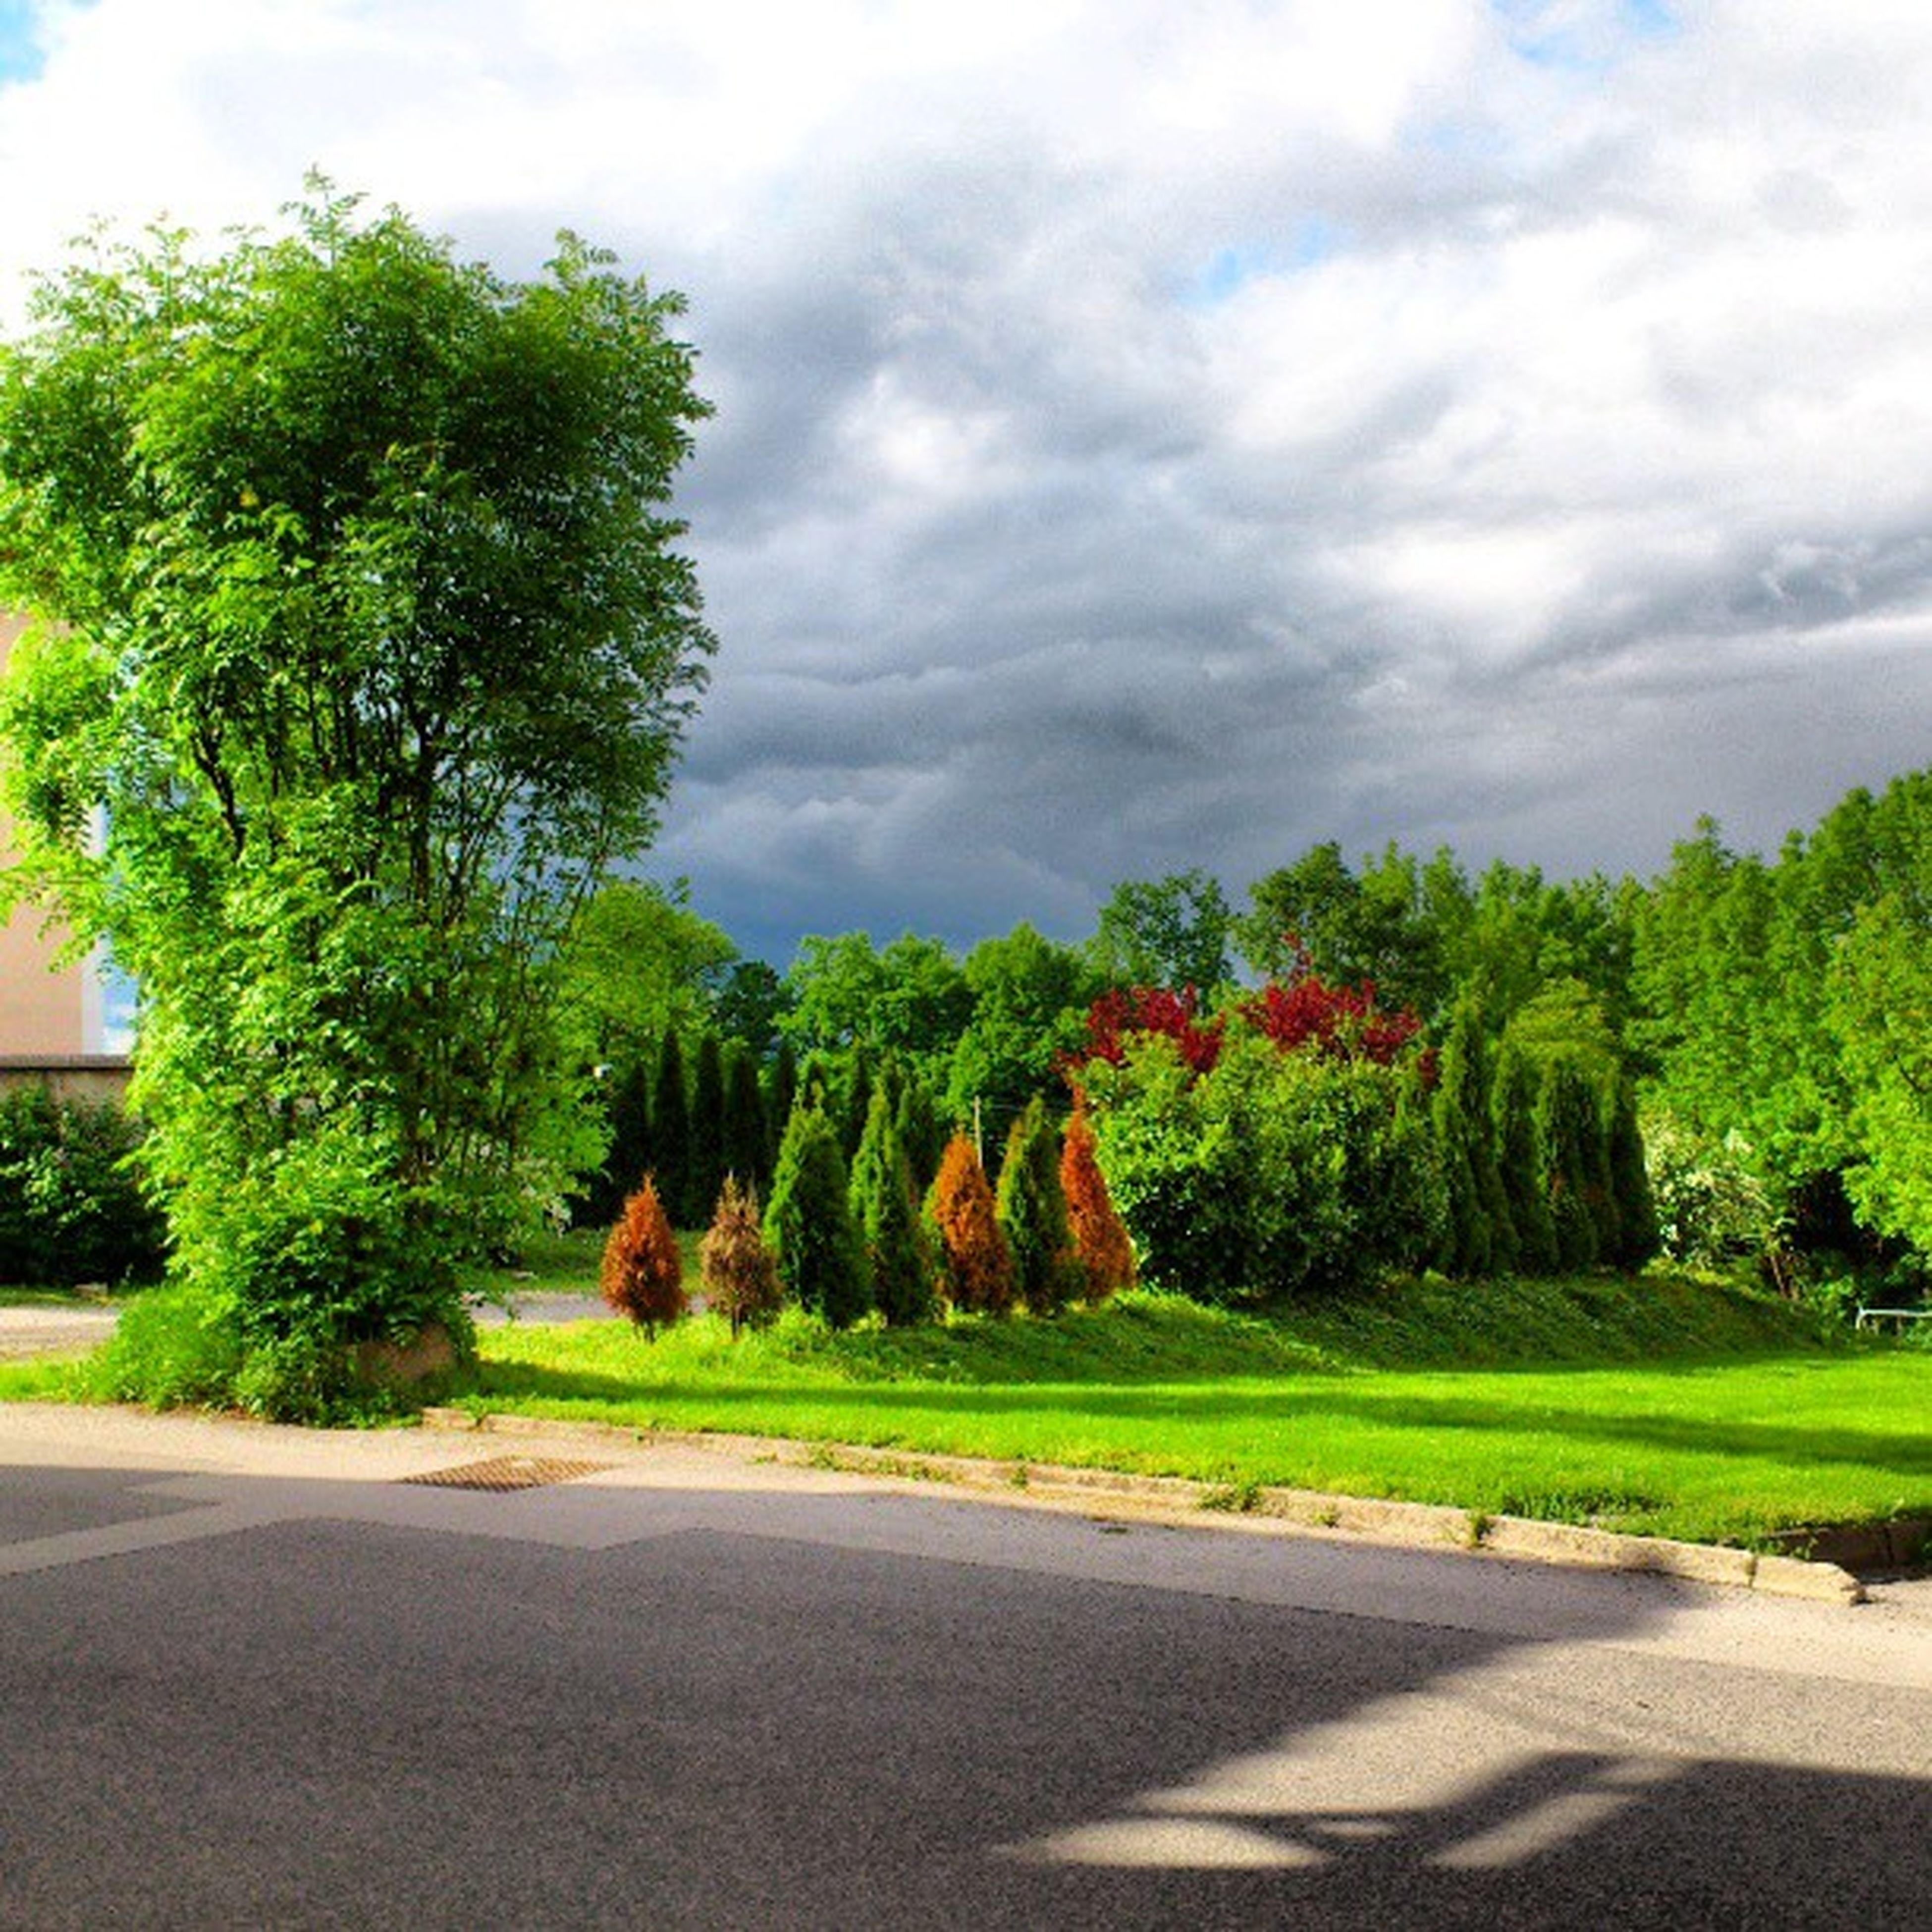 tree, road, the way forward, sky, street, cloud - sky, transportation, road marking, cloudy, growth, nature, empty road, diminishing perspective, cloud, tranquility, asphalt, tranquil scene, outdoors, day, vanishing point